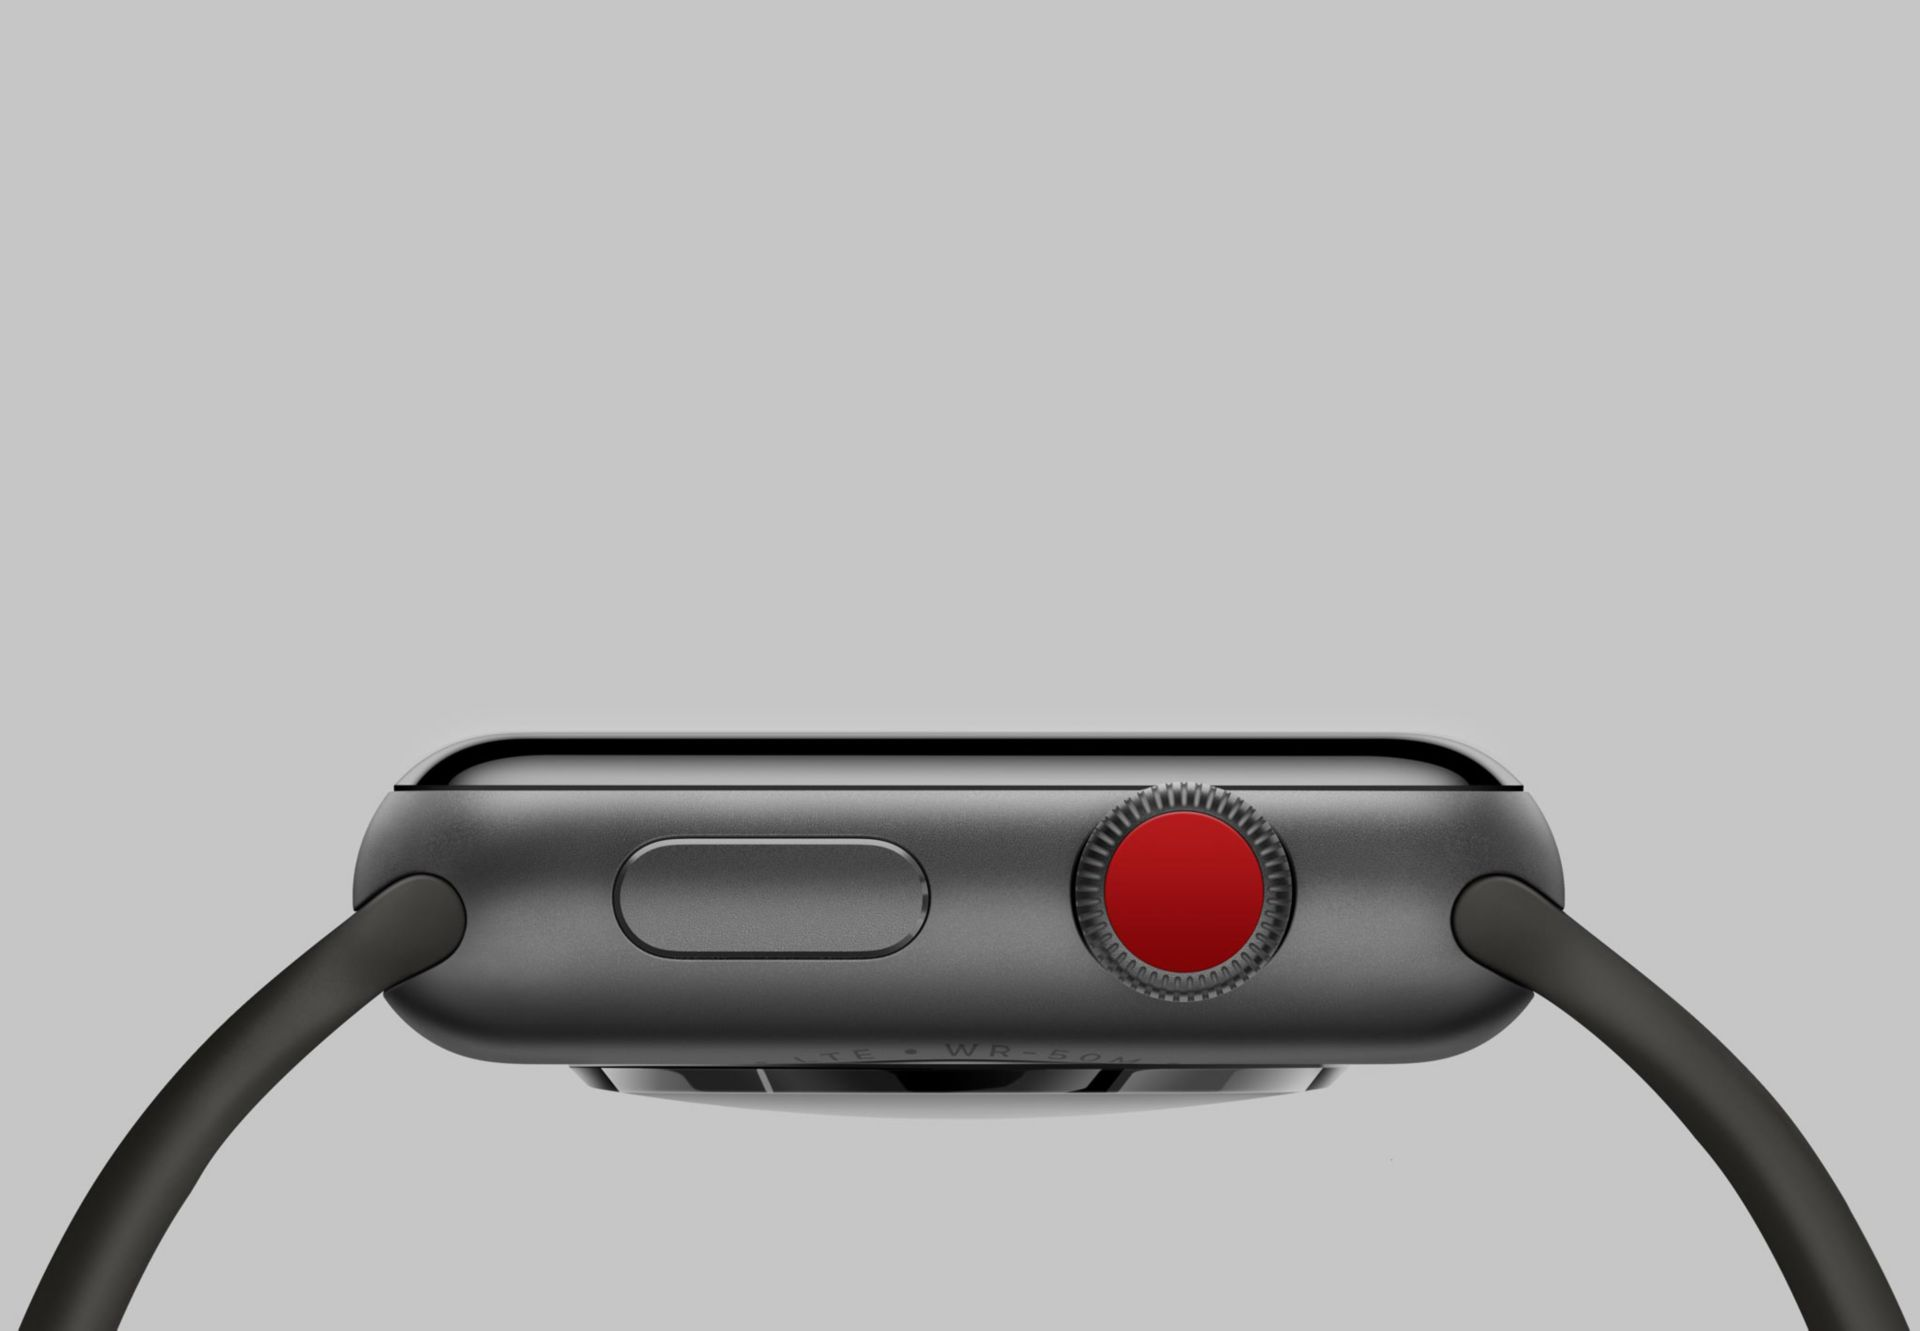 Apple Watch Series 3 Cellular Hero Image